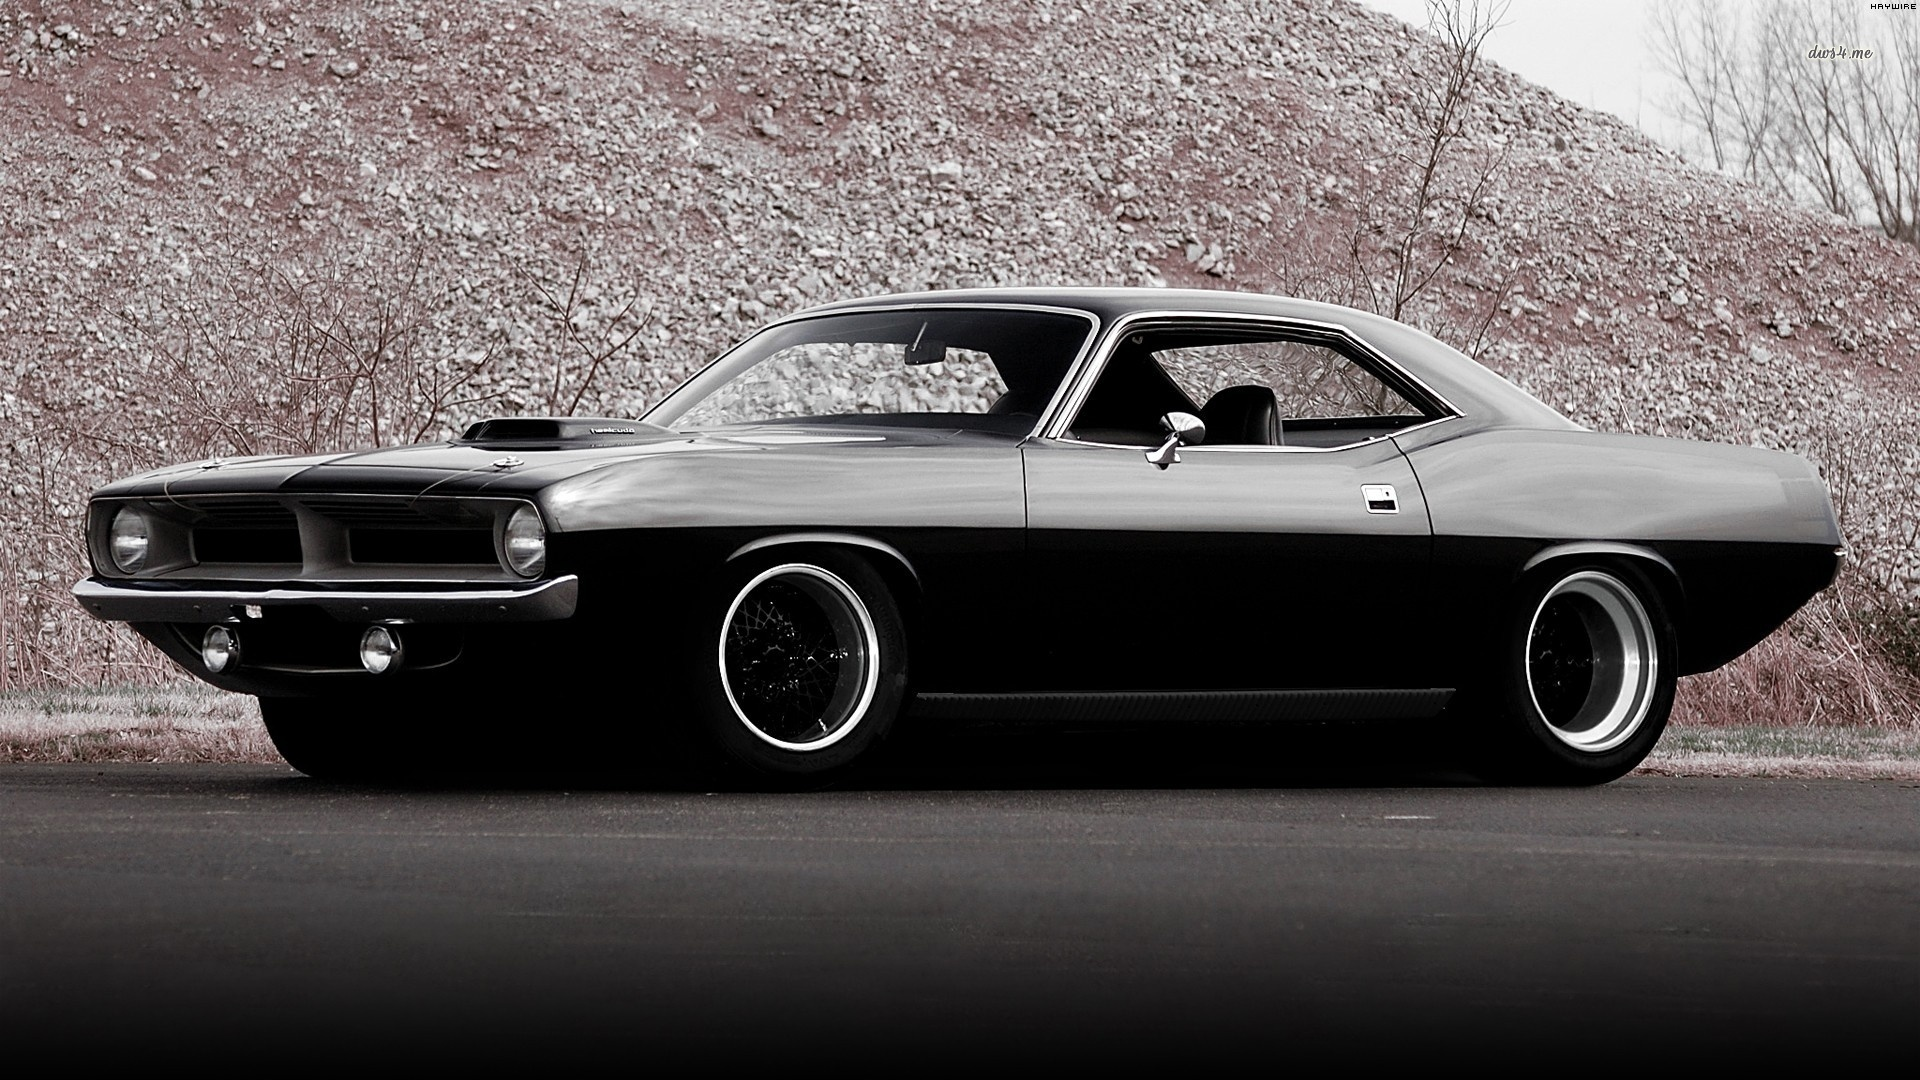 Plymouth Barracuda Photos, Informations, Articles - BestCarMag.com